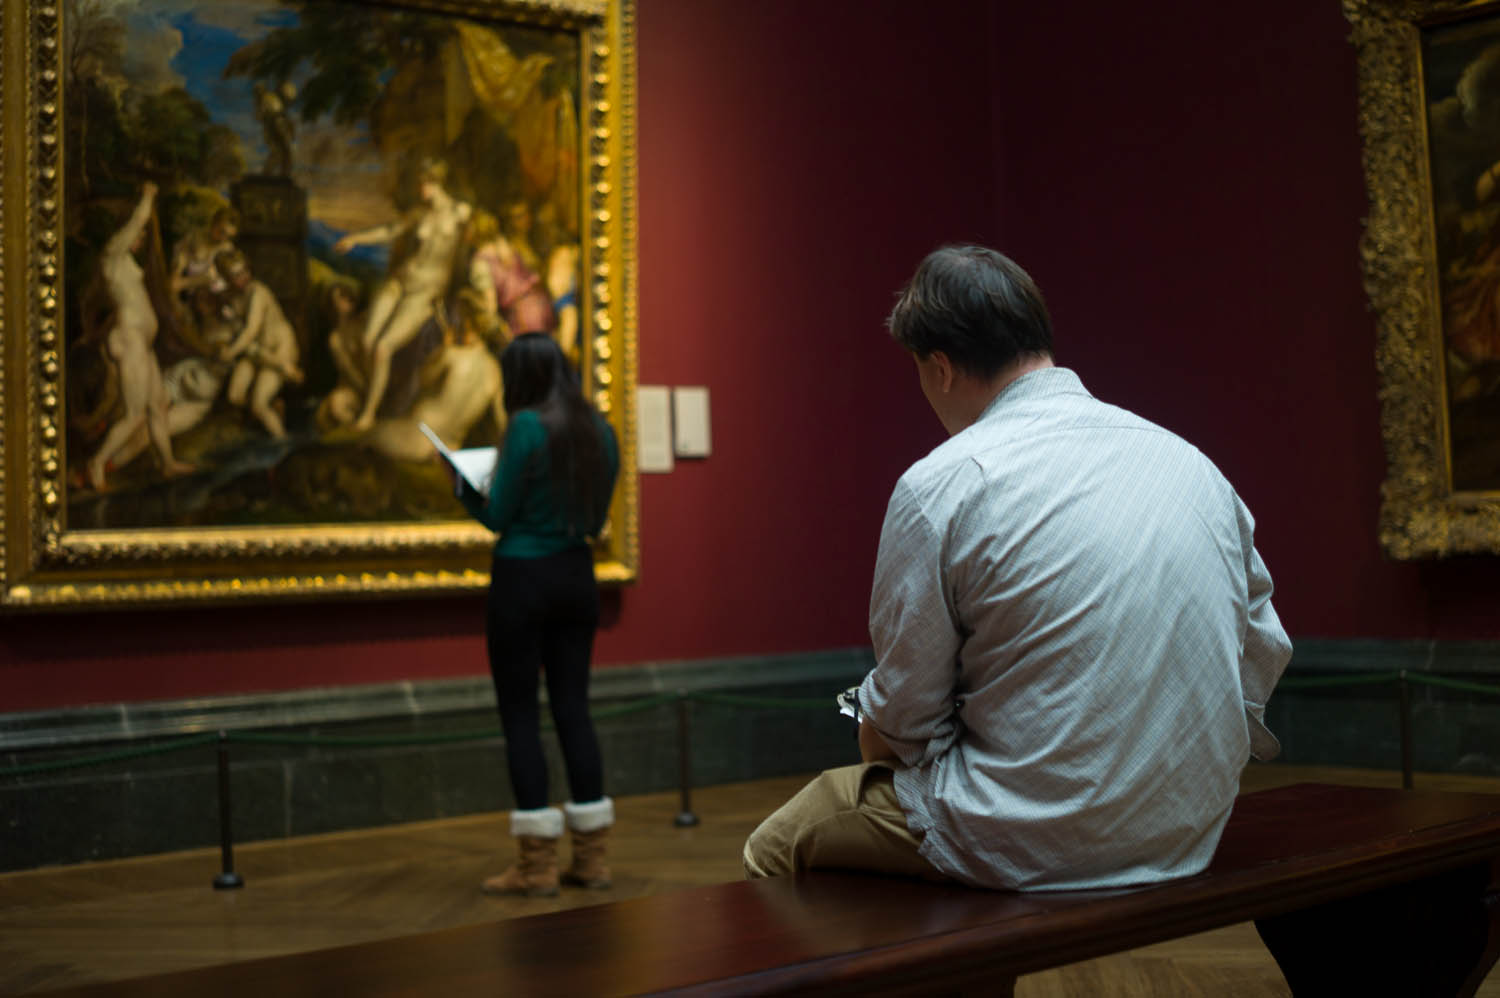 Some artists sketch the painting in front of them at the museum